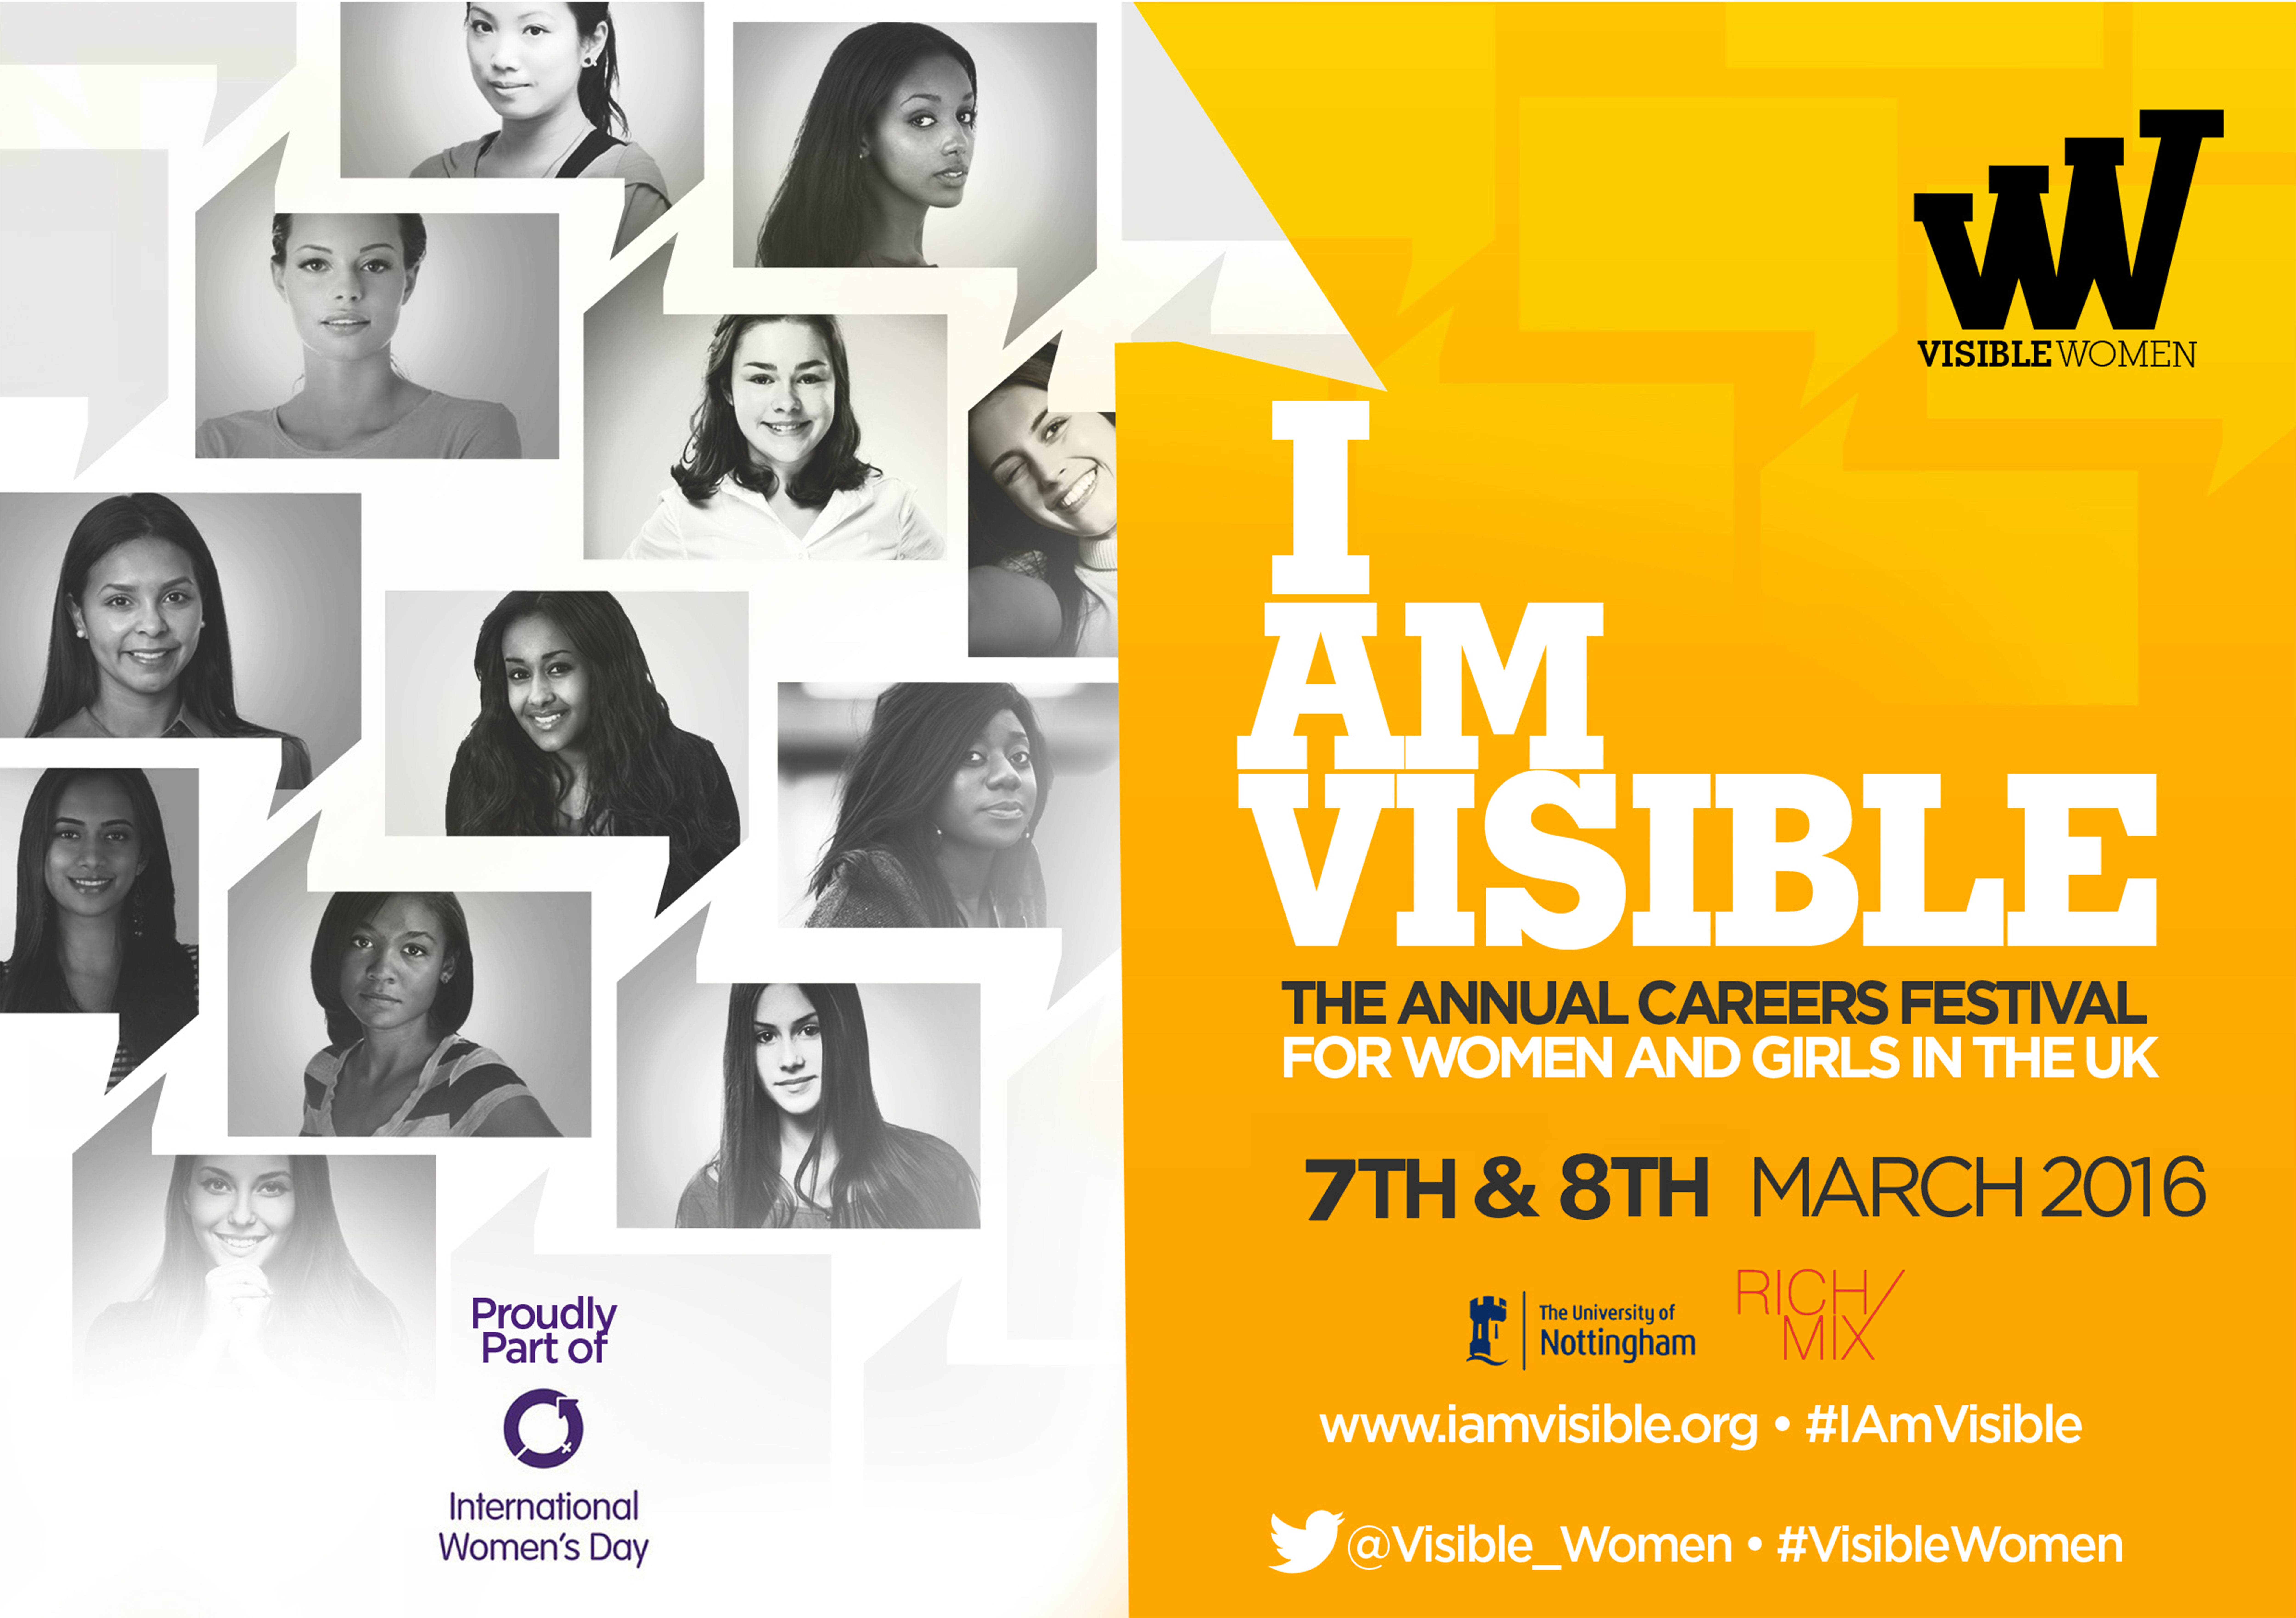 I am Visible - The Annual Careers Festival Fro Women and Girls in the UK - 2nd - 6th March 2015